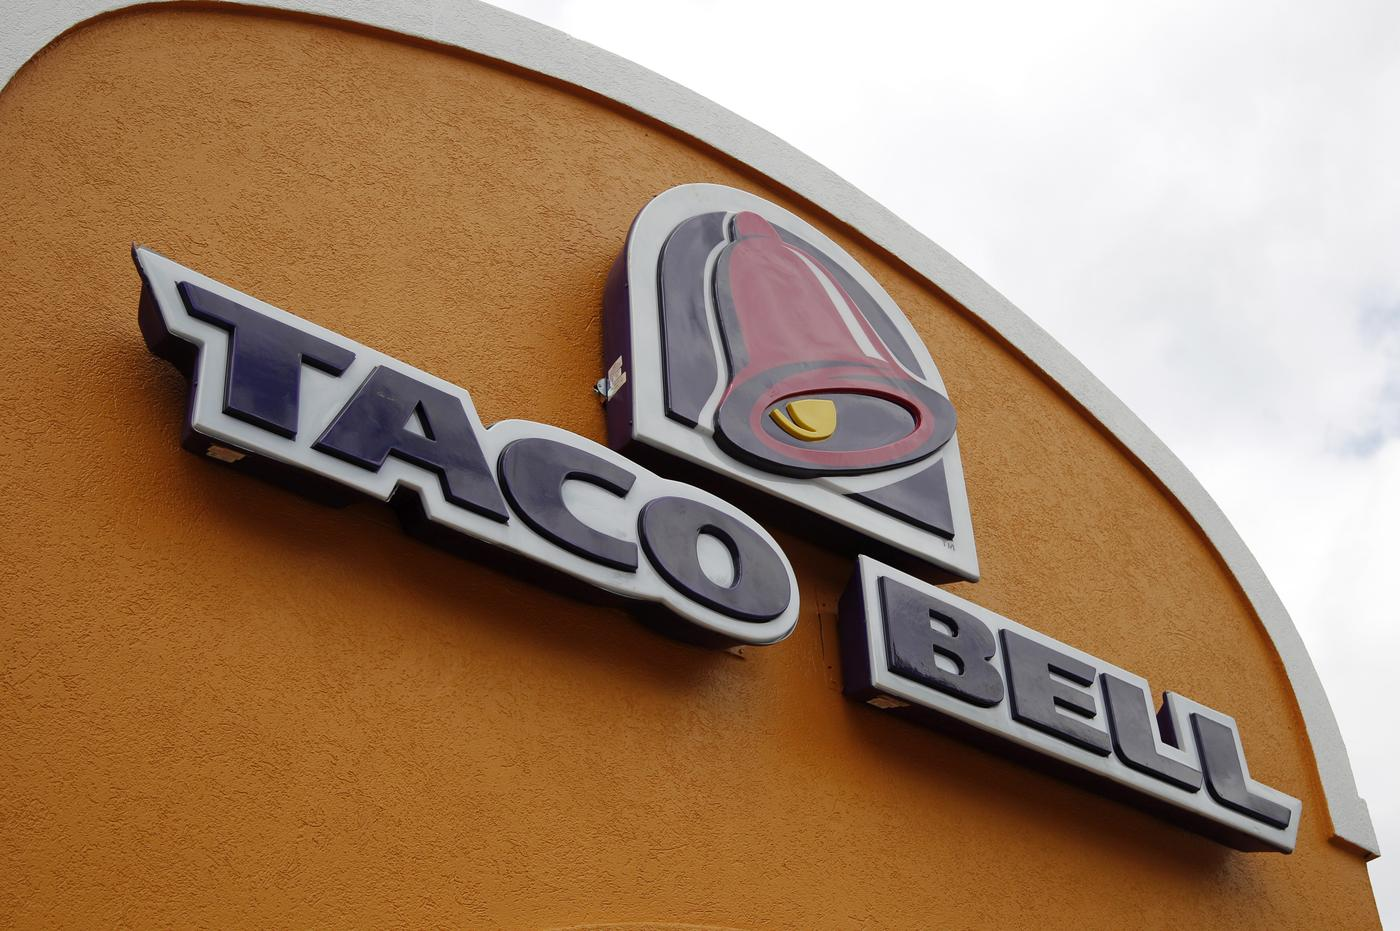 Someone tried to run a meth lab inside a Taco Bell restaurant